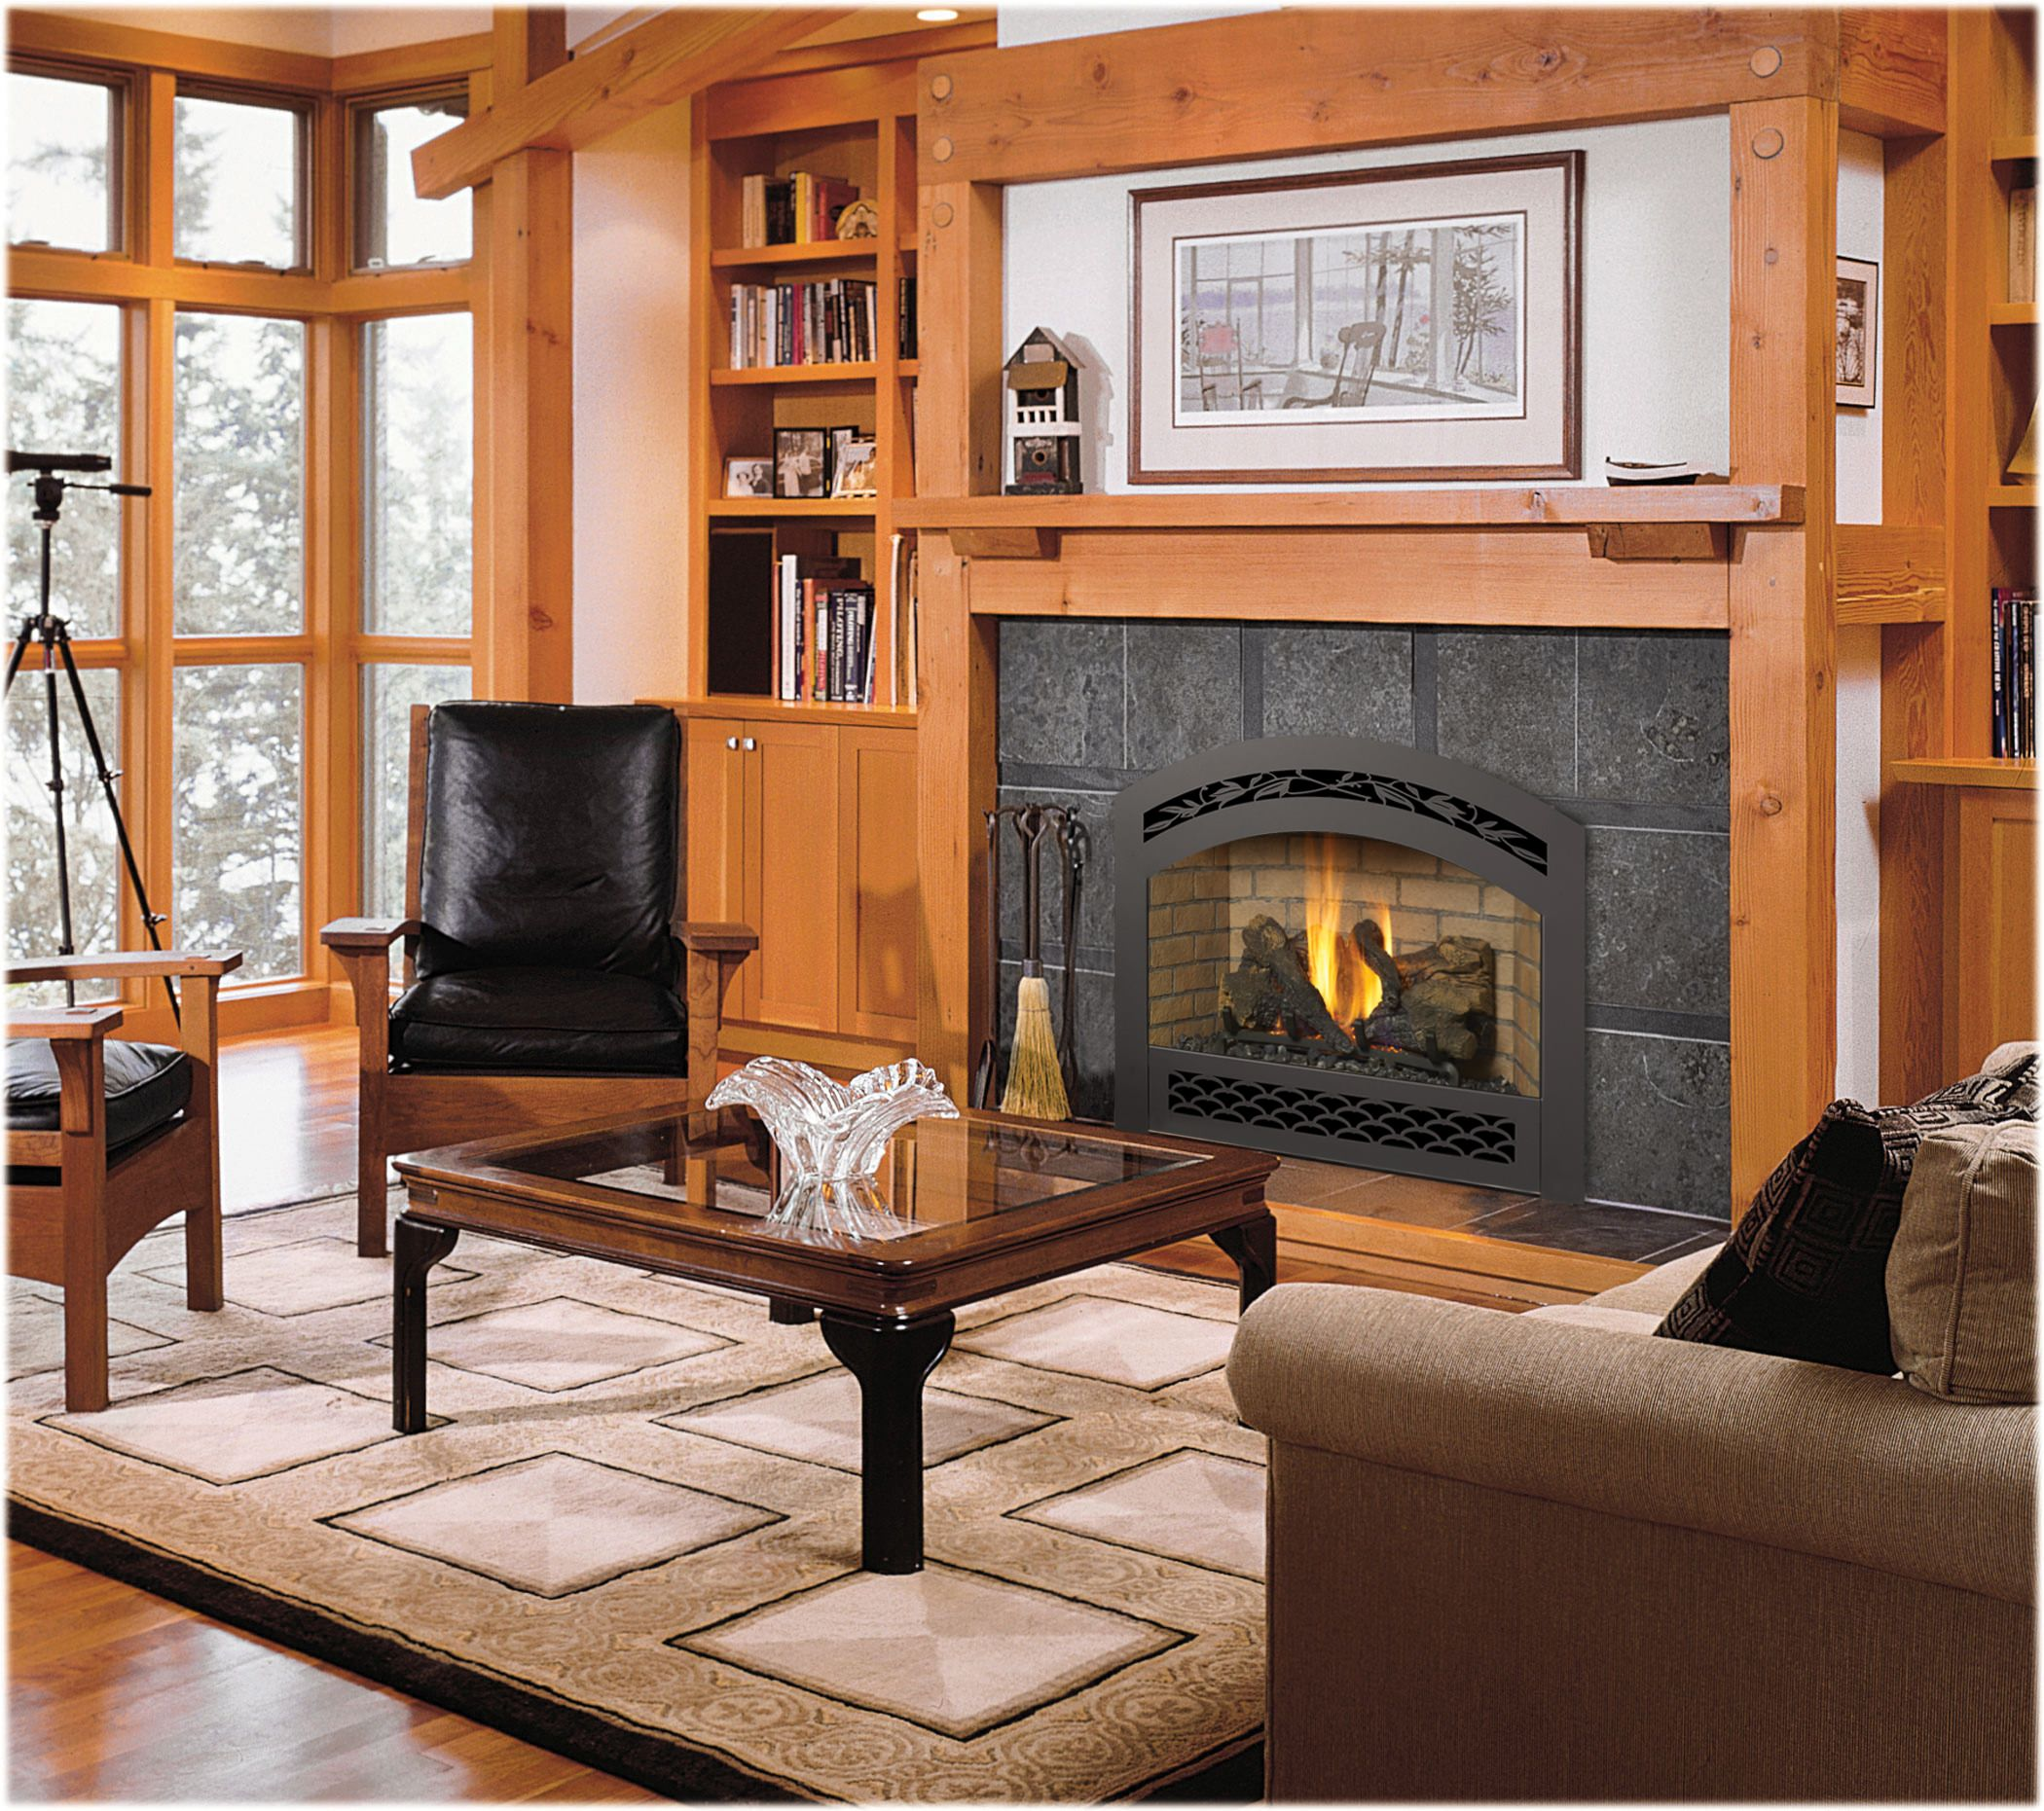 Fireplace Xtrordinair 564 SS Gas Fireplace with French Country Face Black Painted and Tan Brick Firebrick